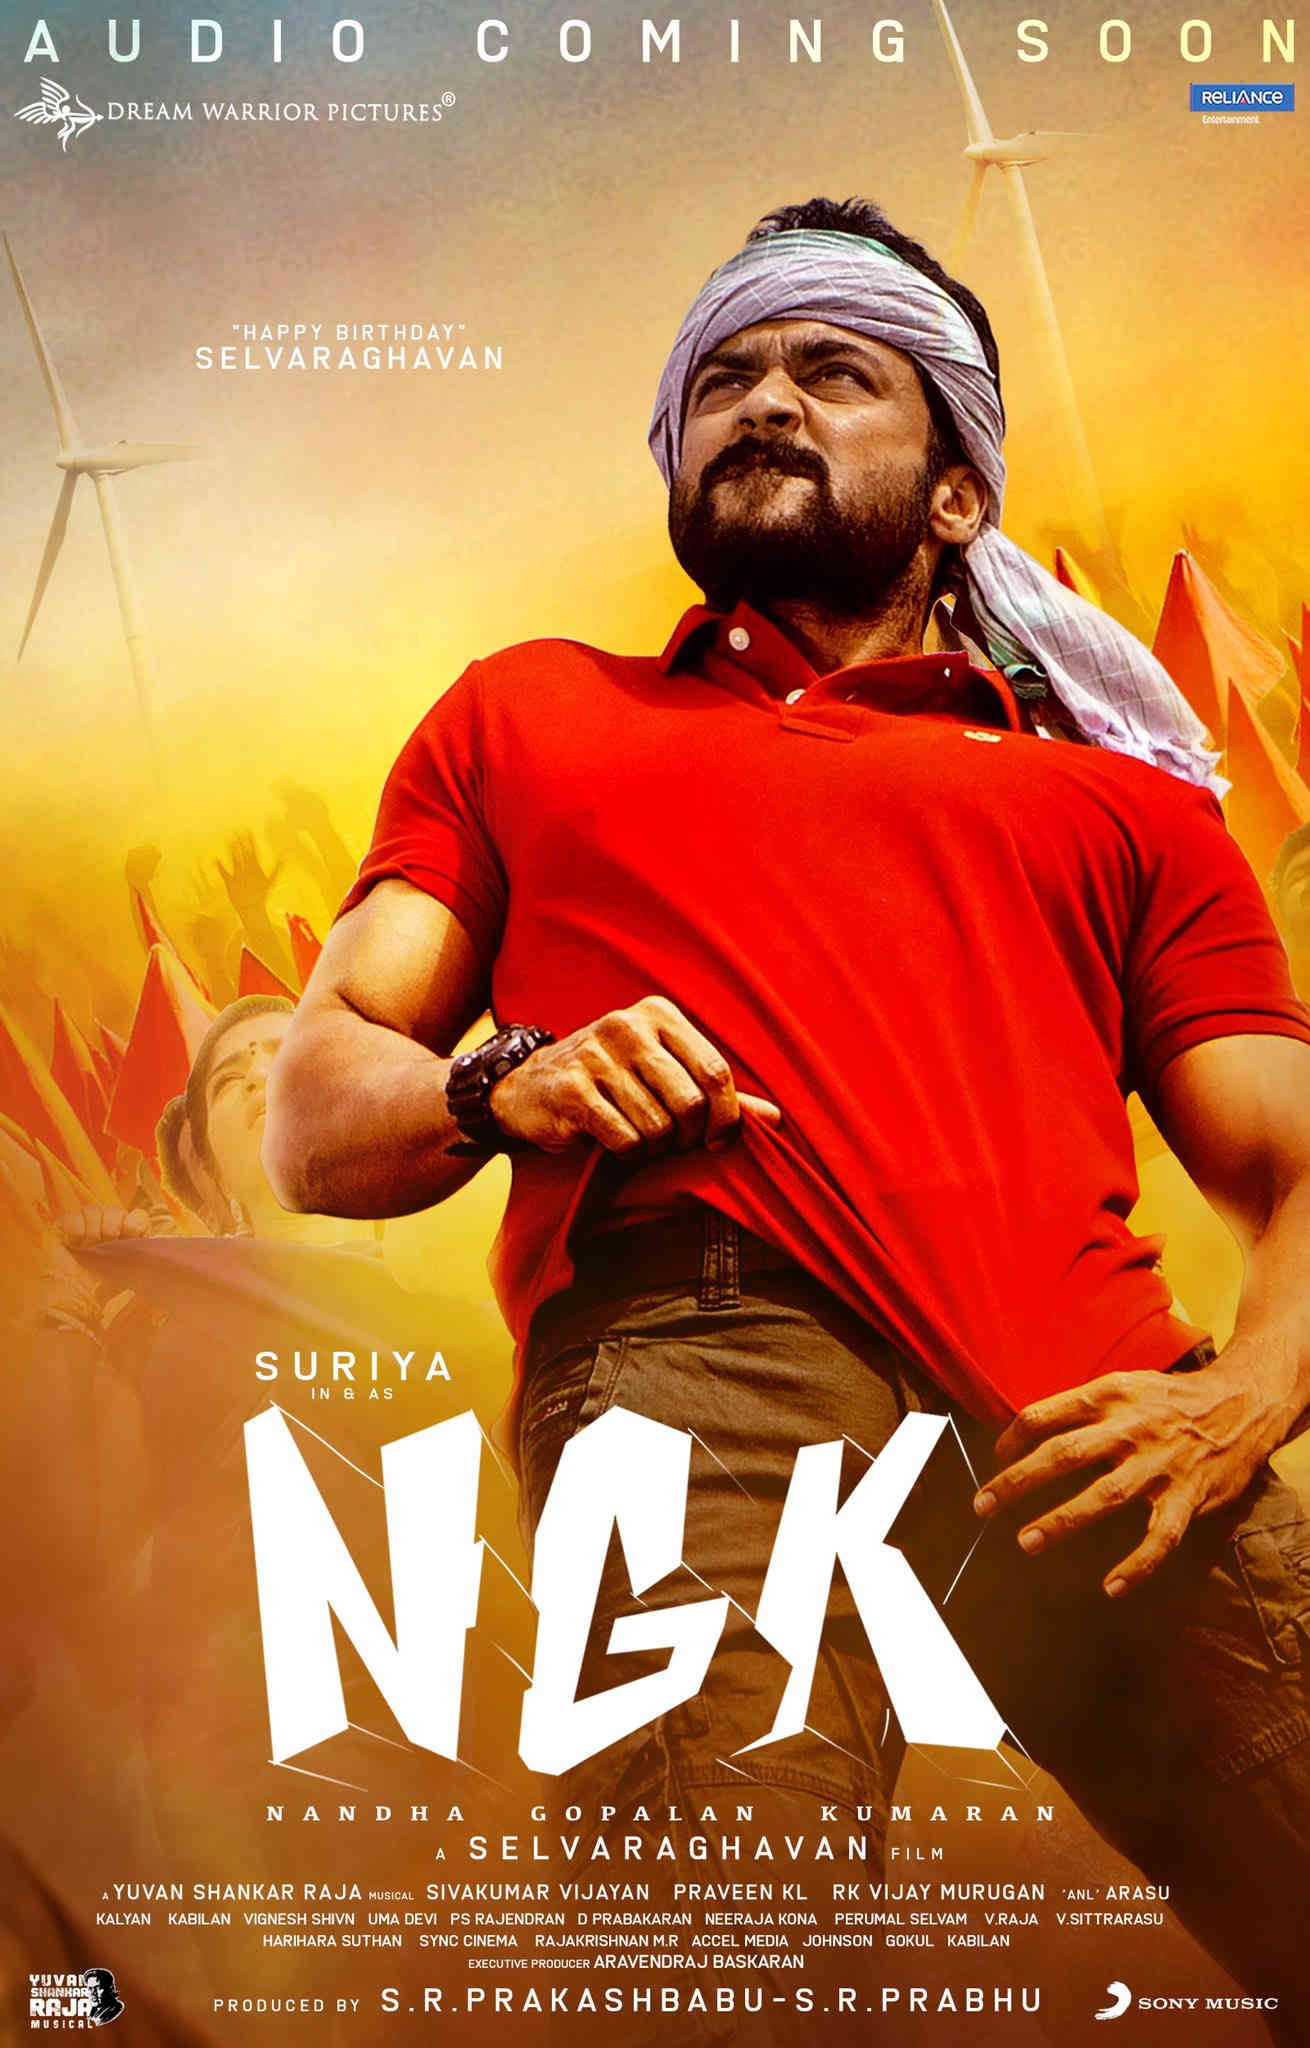 NGK New Poster Featuring Suriya with Birthday Wishes for Selvaraghavan